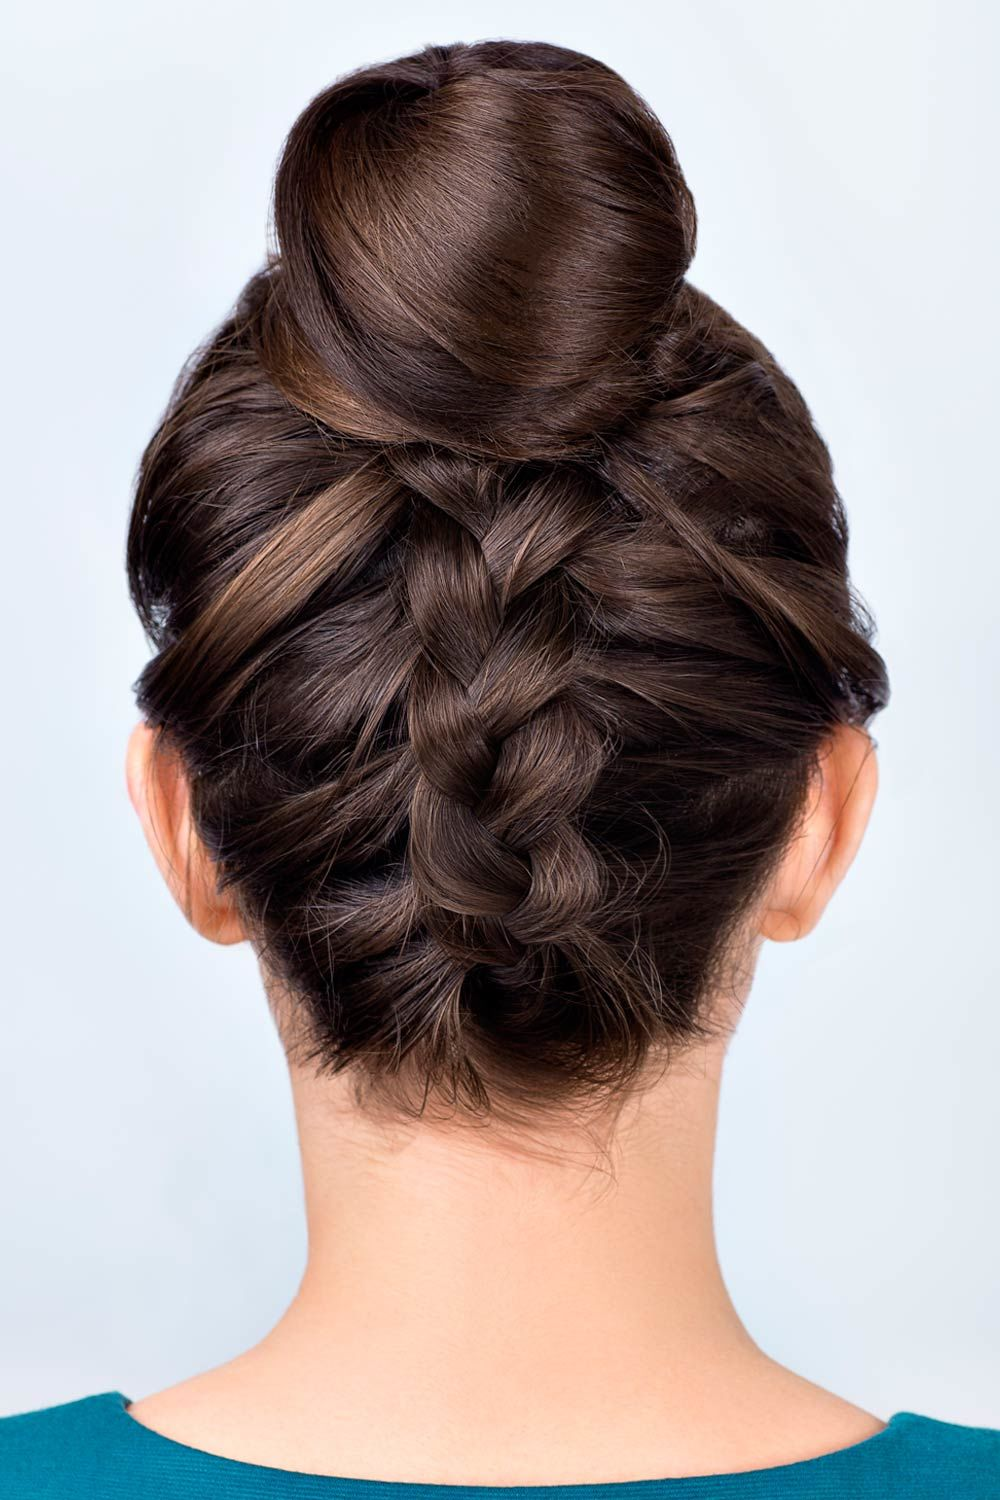 Braided Hairstyle With Hight Top Bun